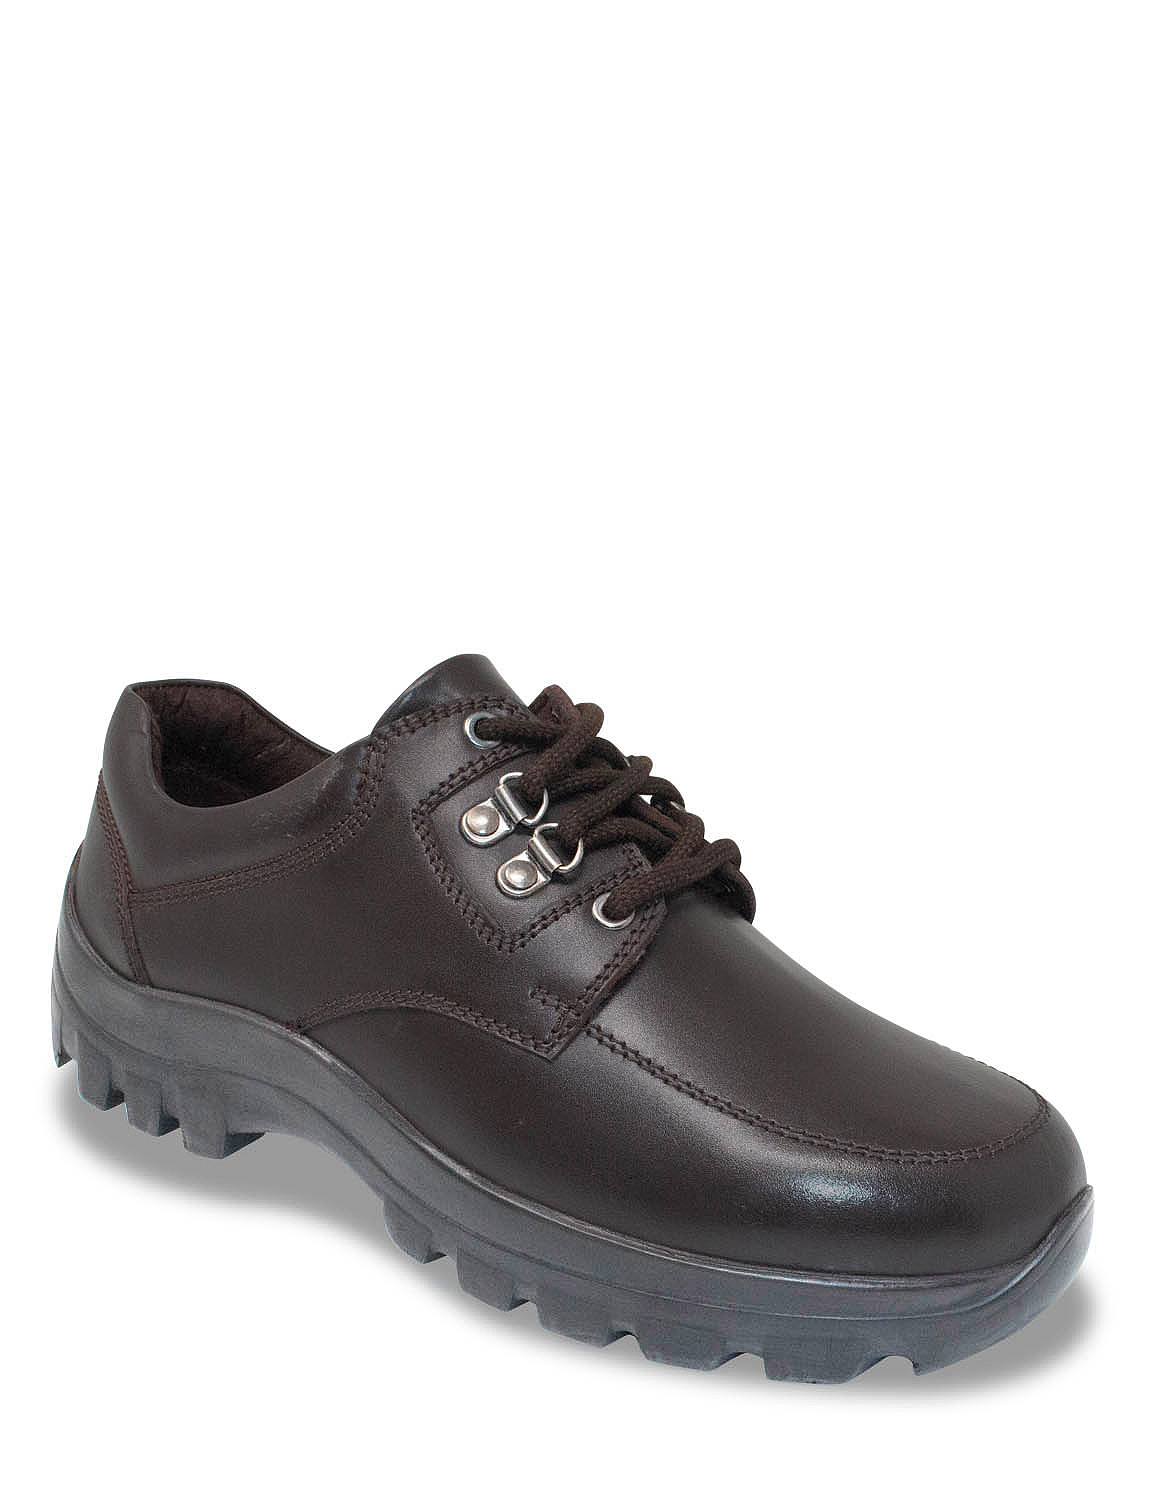 Chums Mens Leather Lace Wide Fitting Walking Shoe